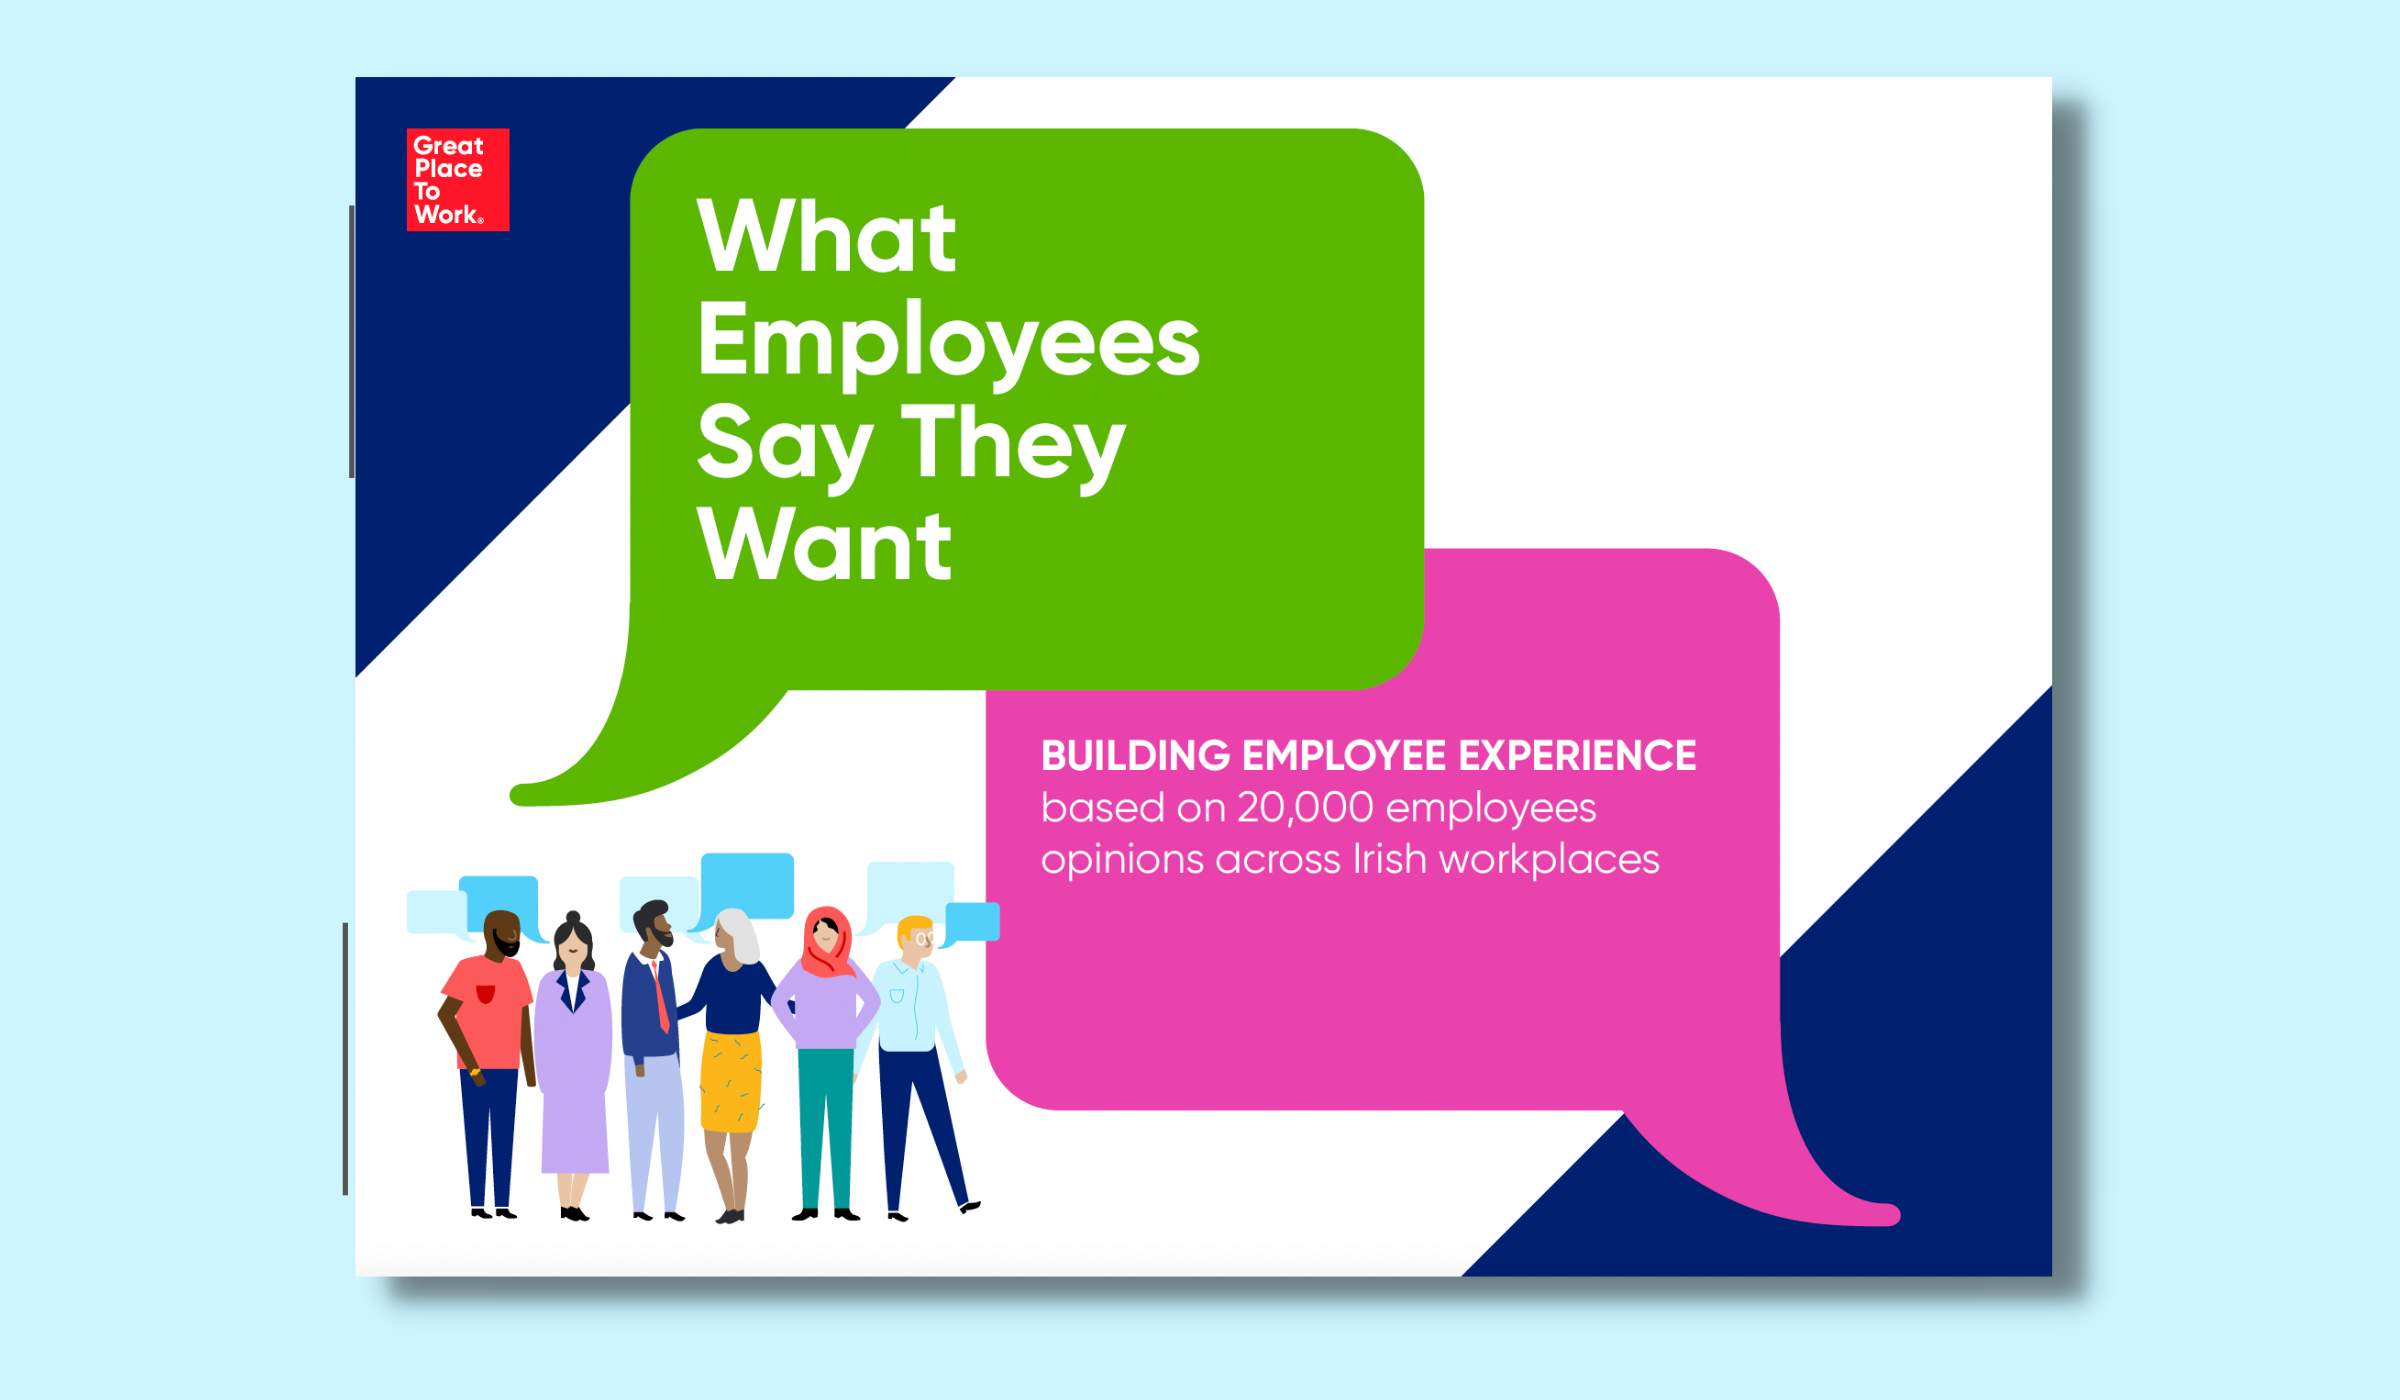 What Employees Say They Want